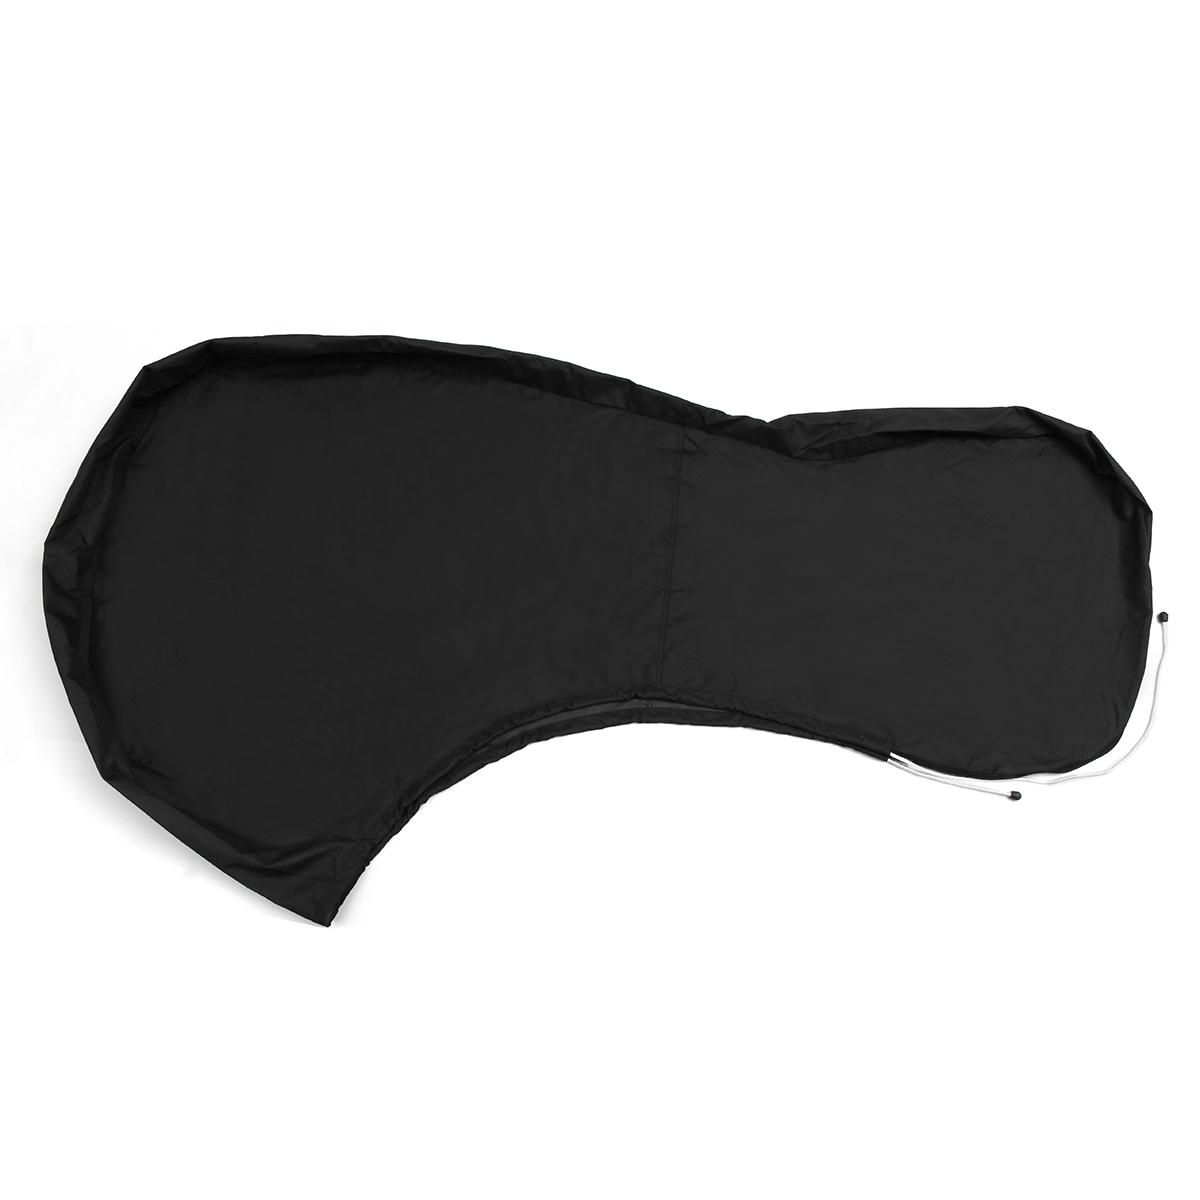 TES US$38.22 600D Black Boat Full Outboard Engine Cover Fit For 100 To 150HP Motor Waterproof